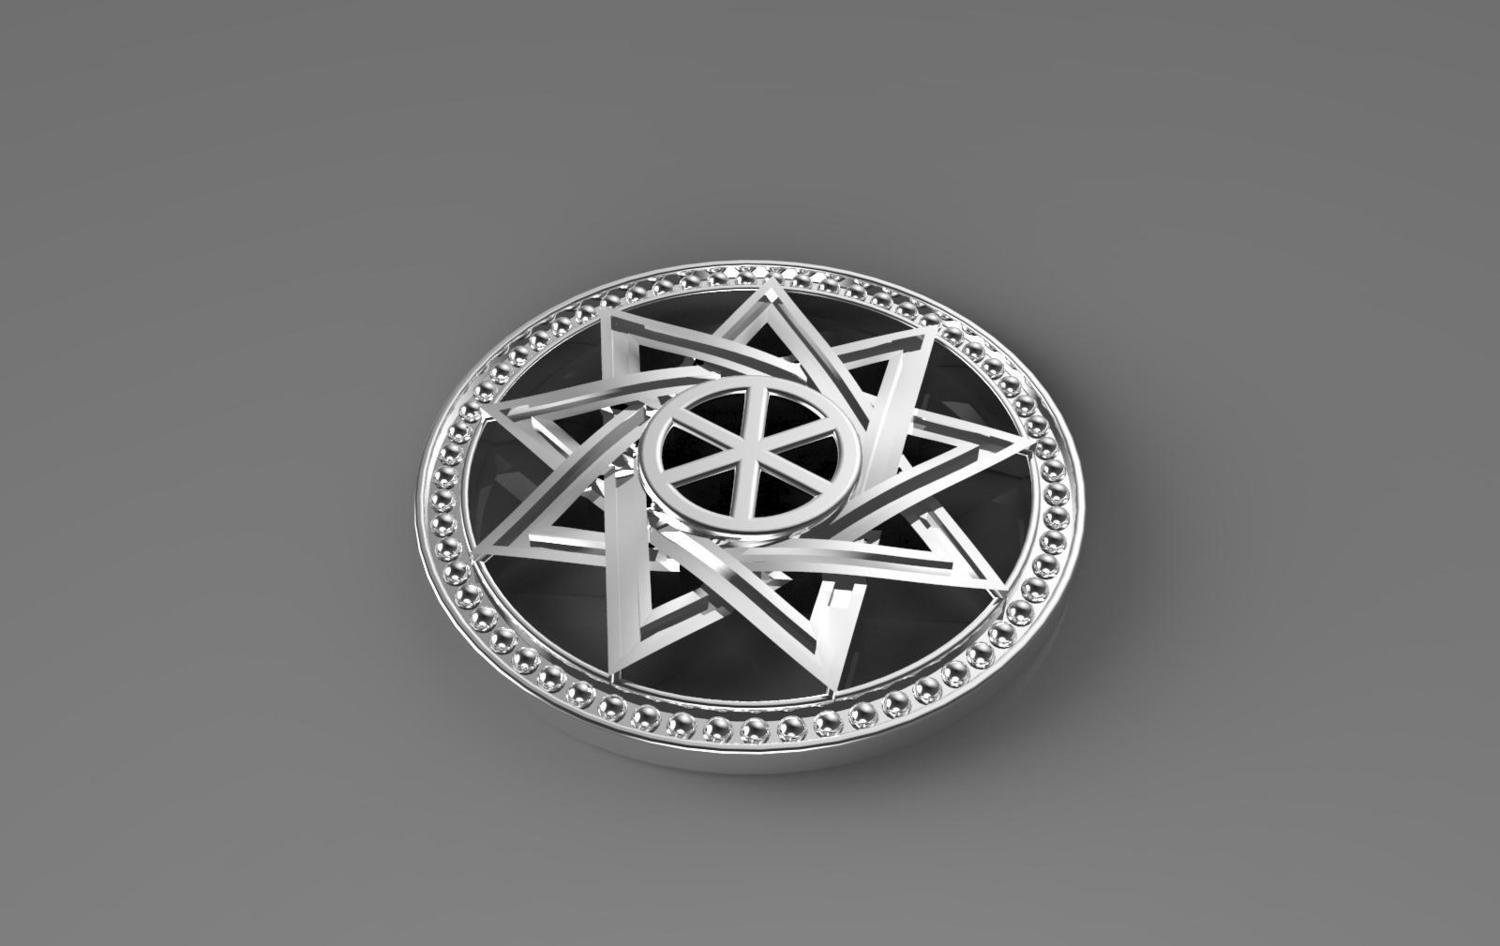 3D CAD Model of Religious Pendant